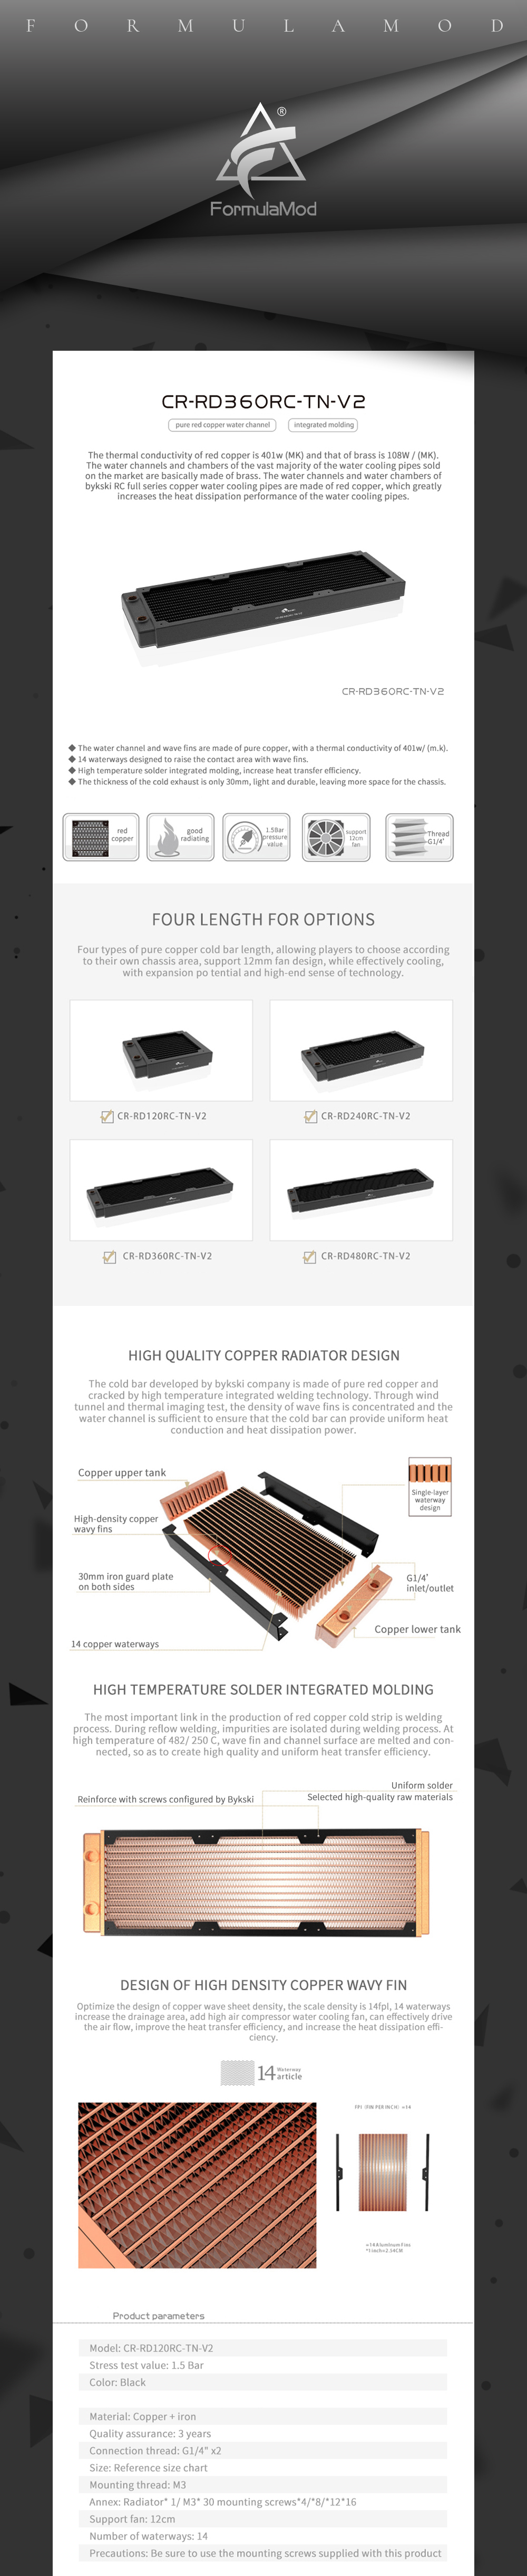 Bykski 360mm Copper Radiator RC Series High-performance Heat Dissipation 30mm Thickness for 12cm Fan Cooler, CR-RD360RC-TN-V2